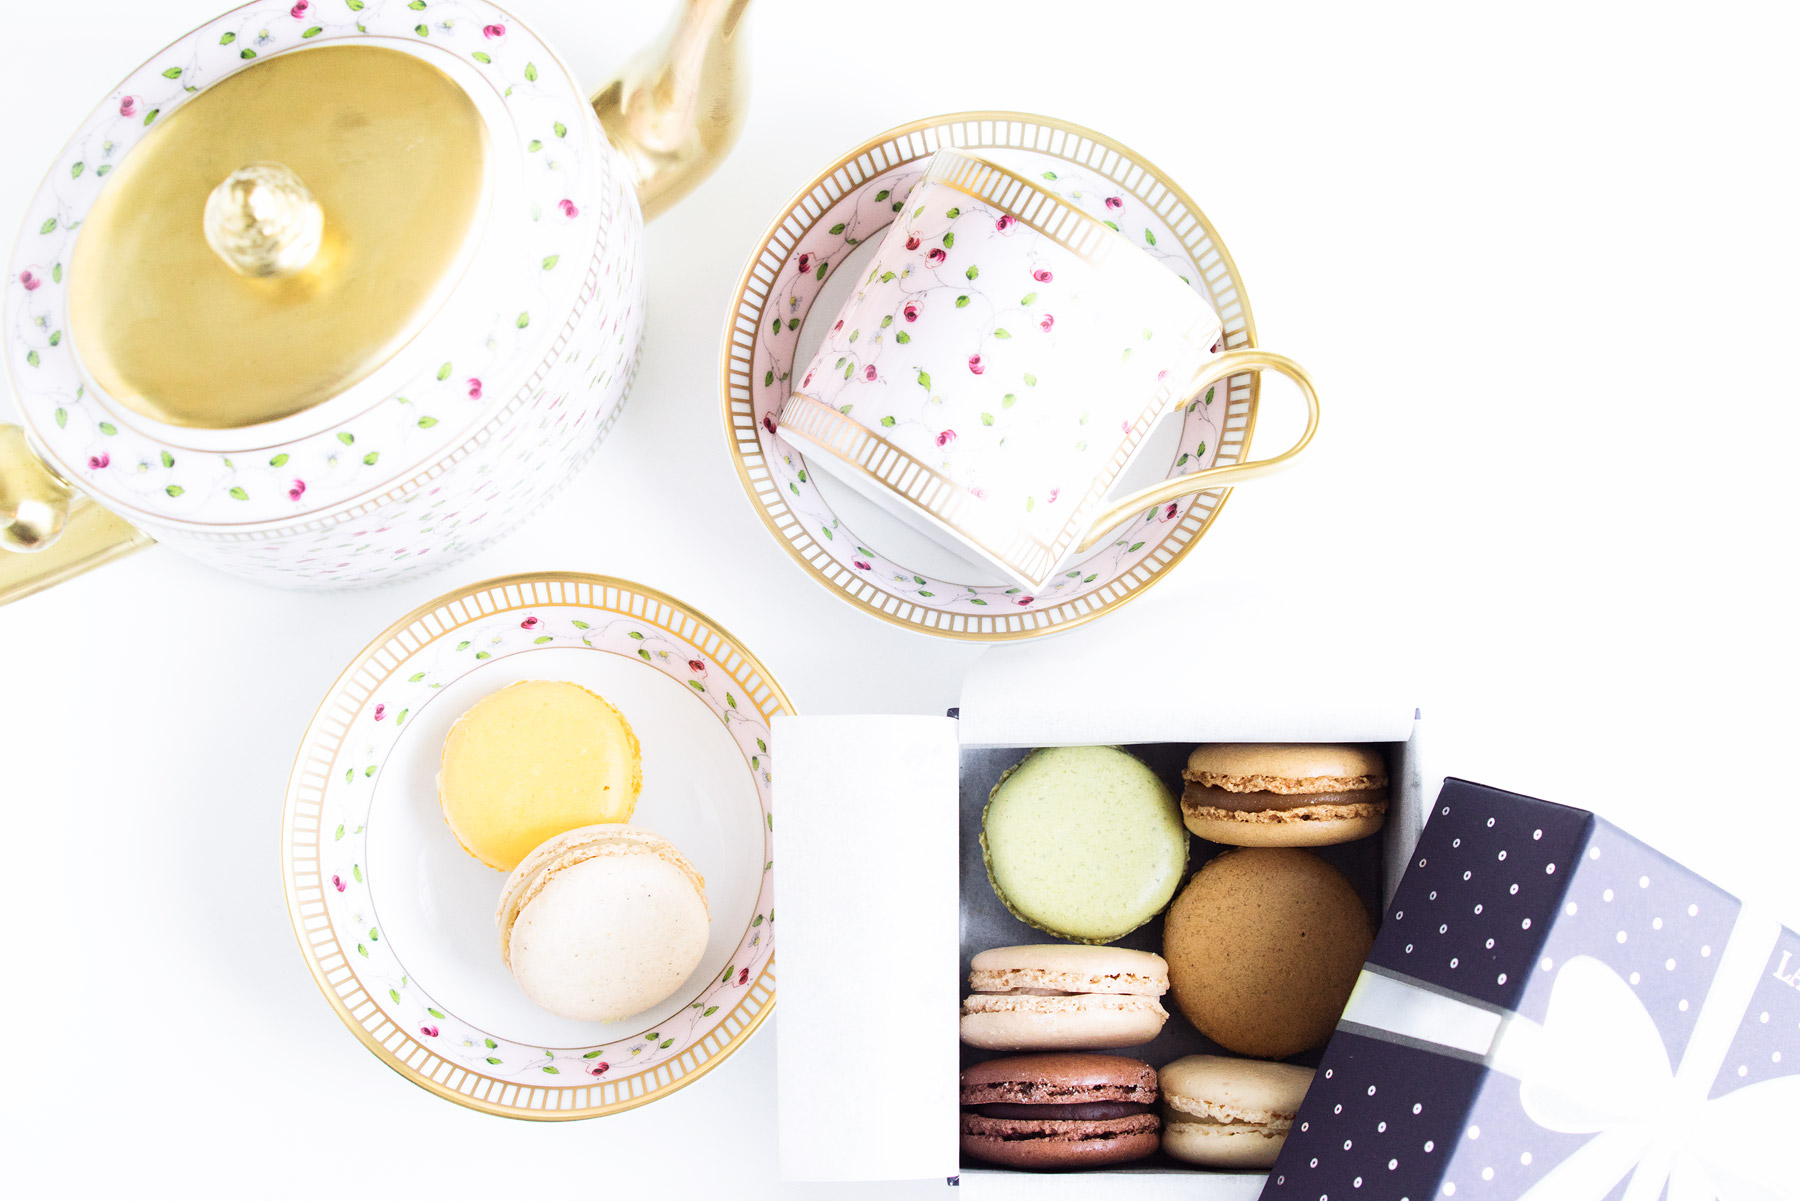 Ladurée tea set